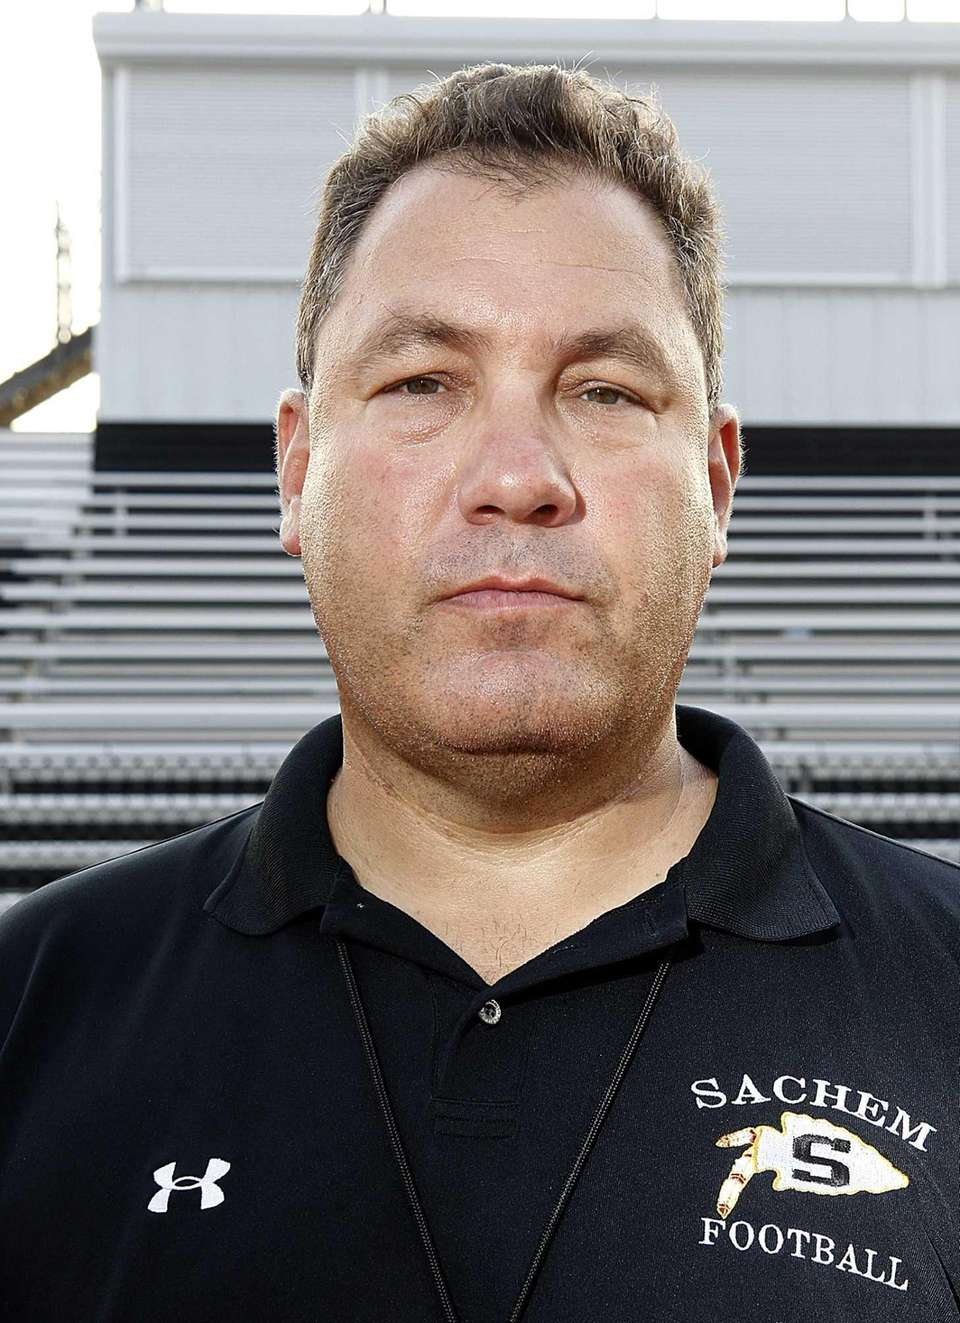 Sachem North Football head coach Dave Falco poses